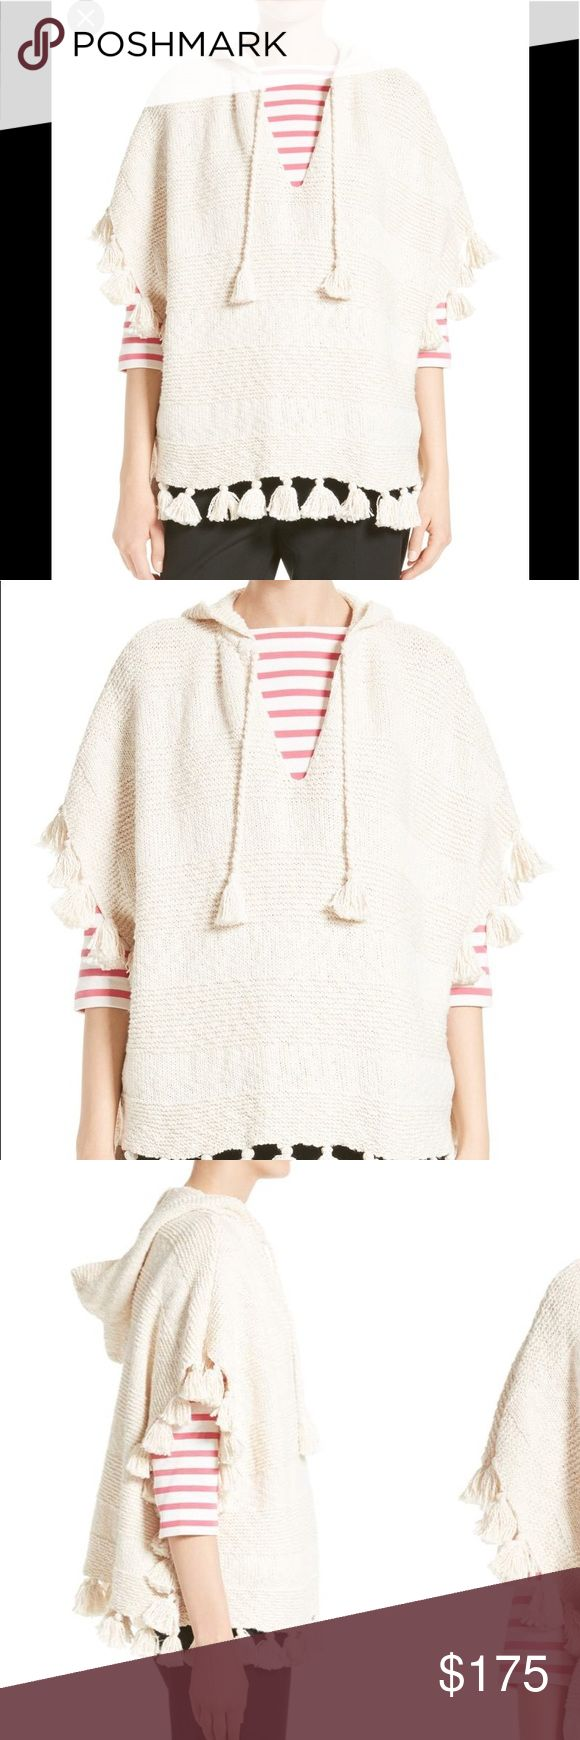 """NWOT*** tassel hooded slub cotton poncho Chunky tassels enhance the richly textured design of a hooded cotton-knit poncho for a playful layering piece to transition into next season. 27"""" length; 2"""" tassel (size Medium) Ties at V-neck Short sleeve No tags, never worn! kate spade Sweaters Shrugs & Ponchos"""